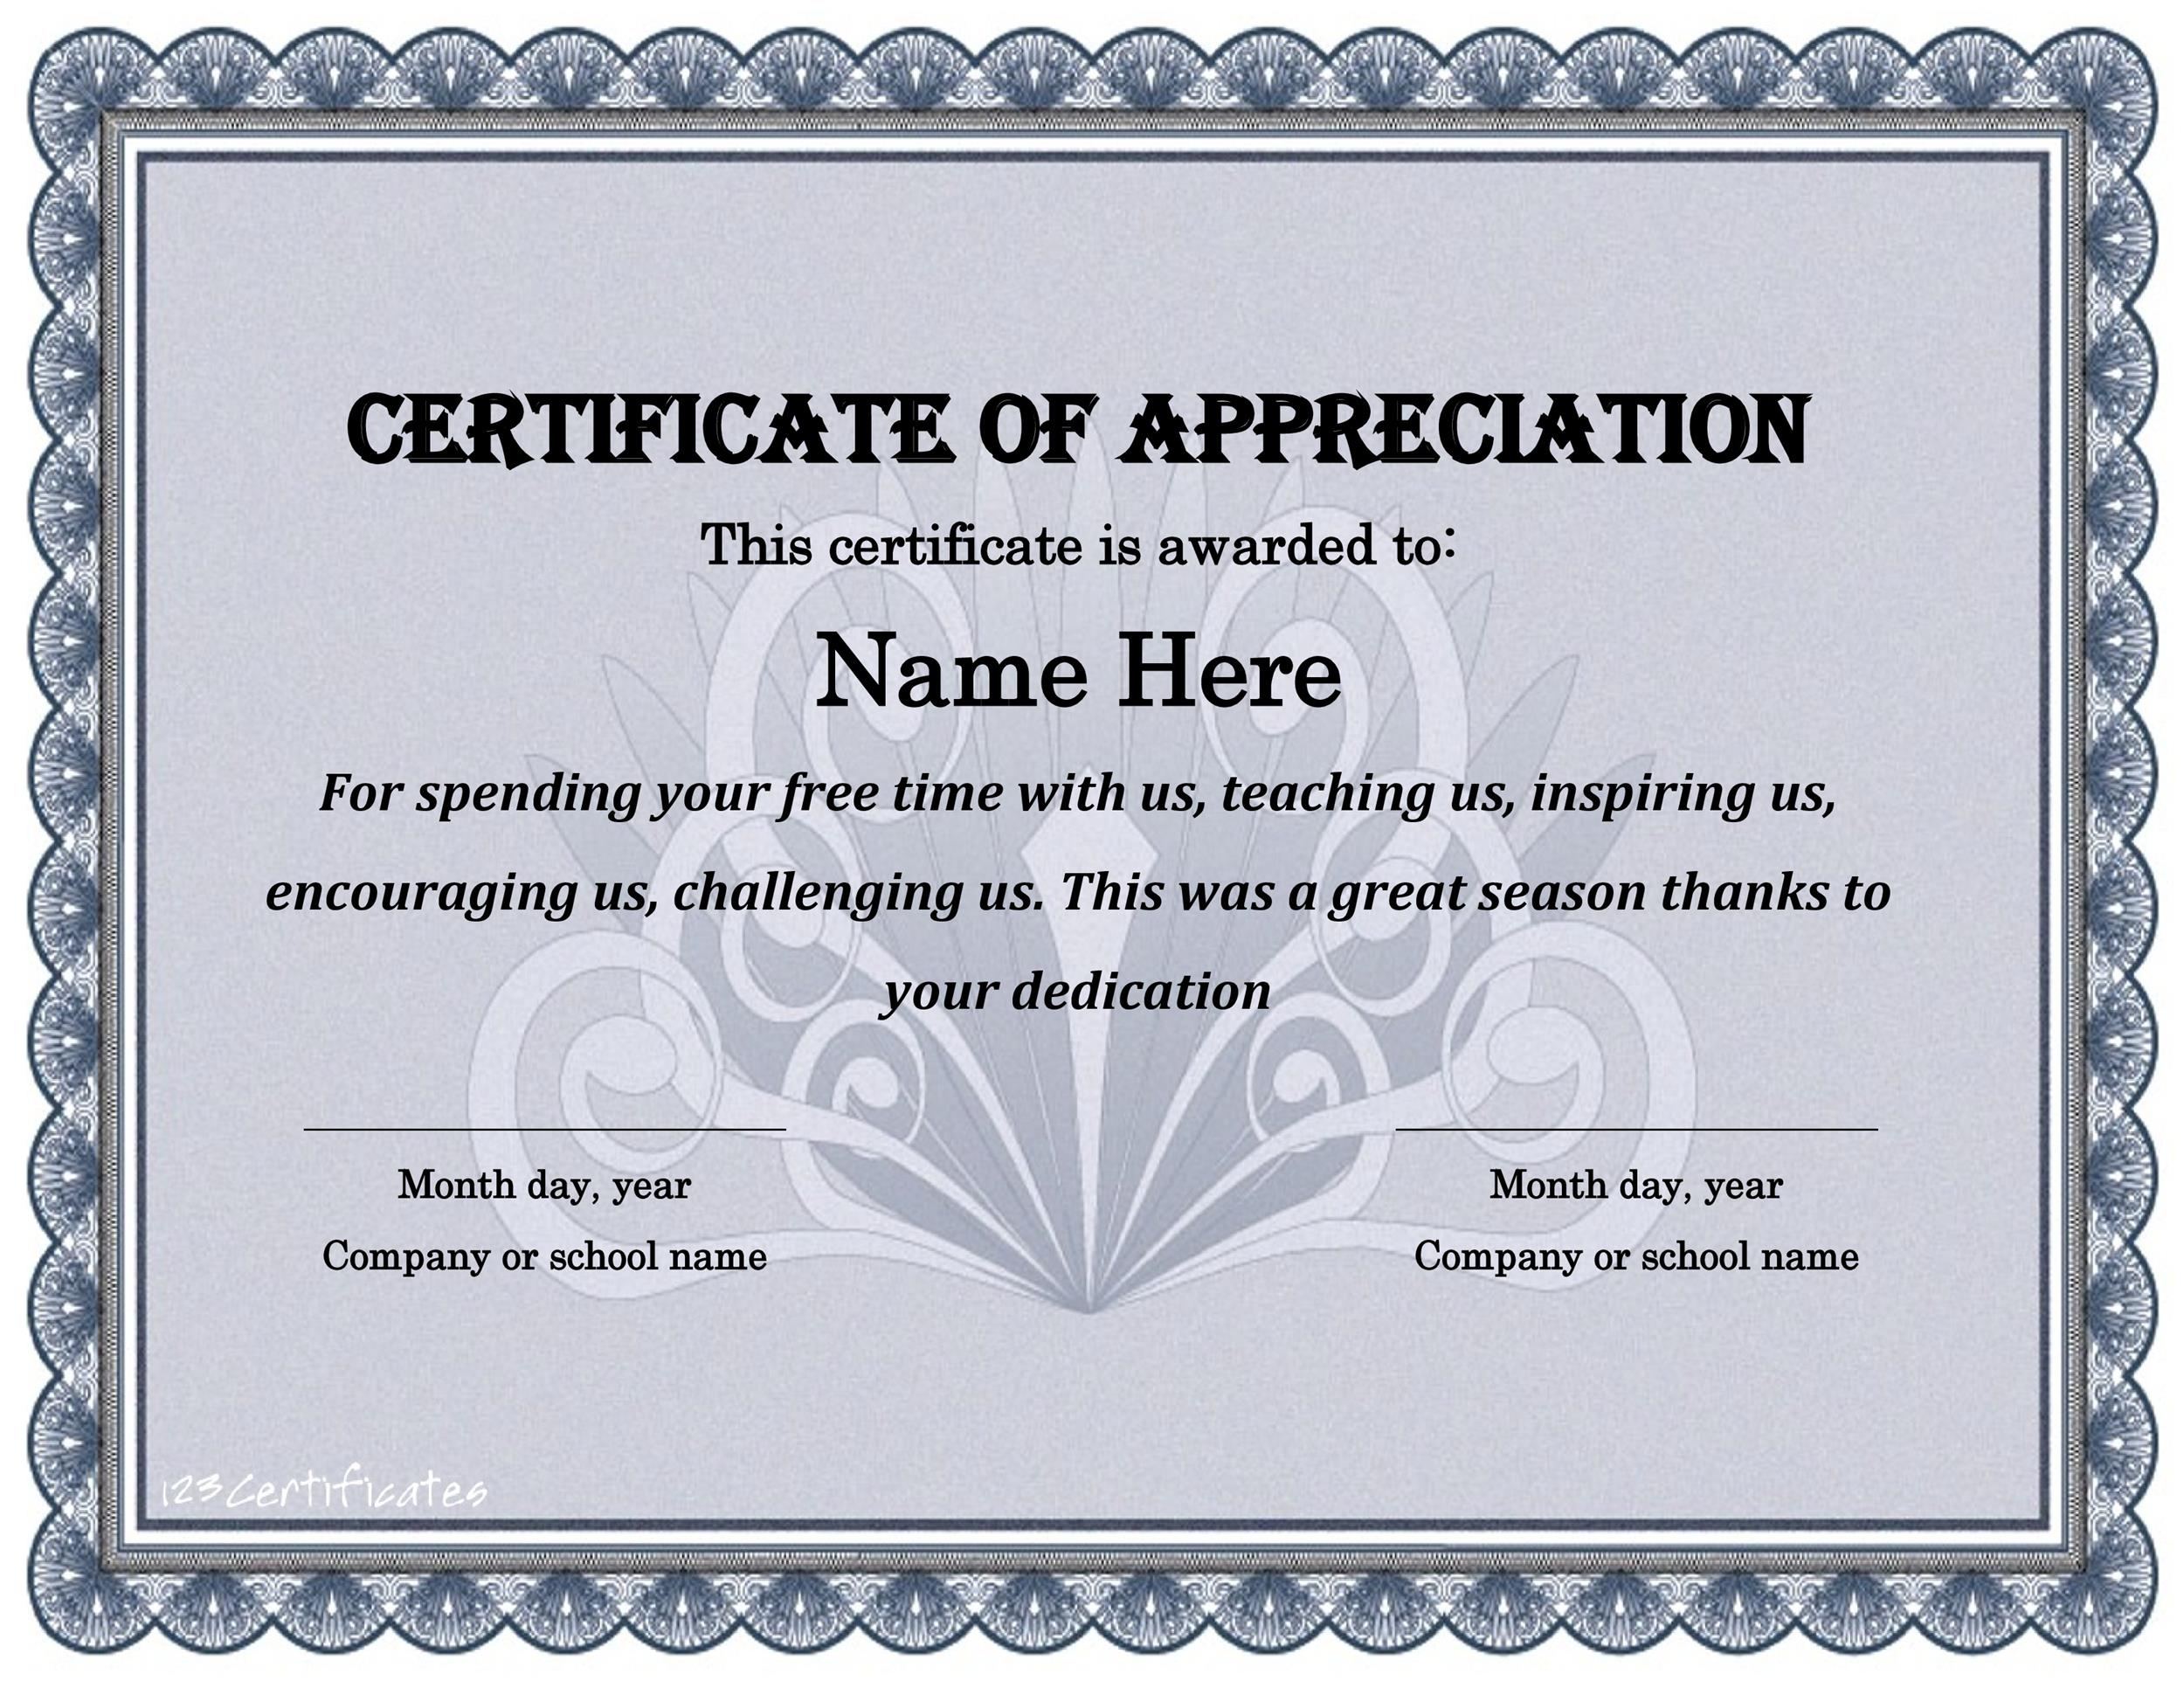 30 free certificate of appreciation templates and letters printable certificate of appreciation 21 yadclub Choice Image